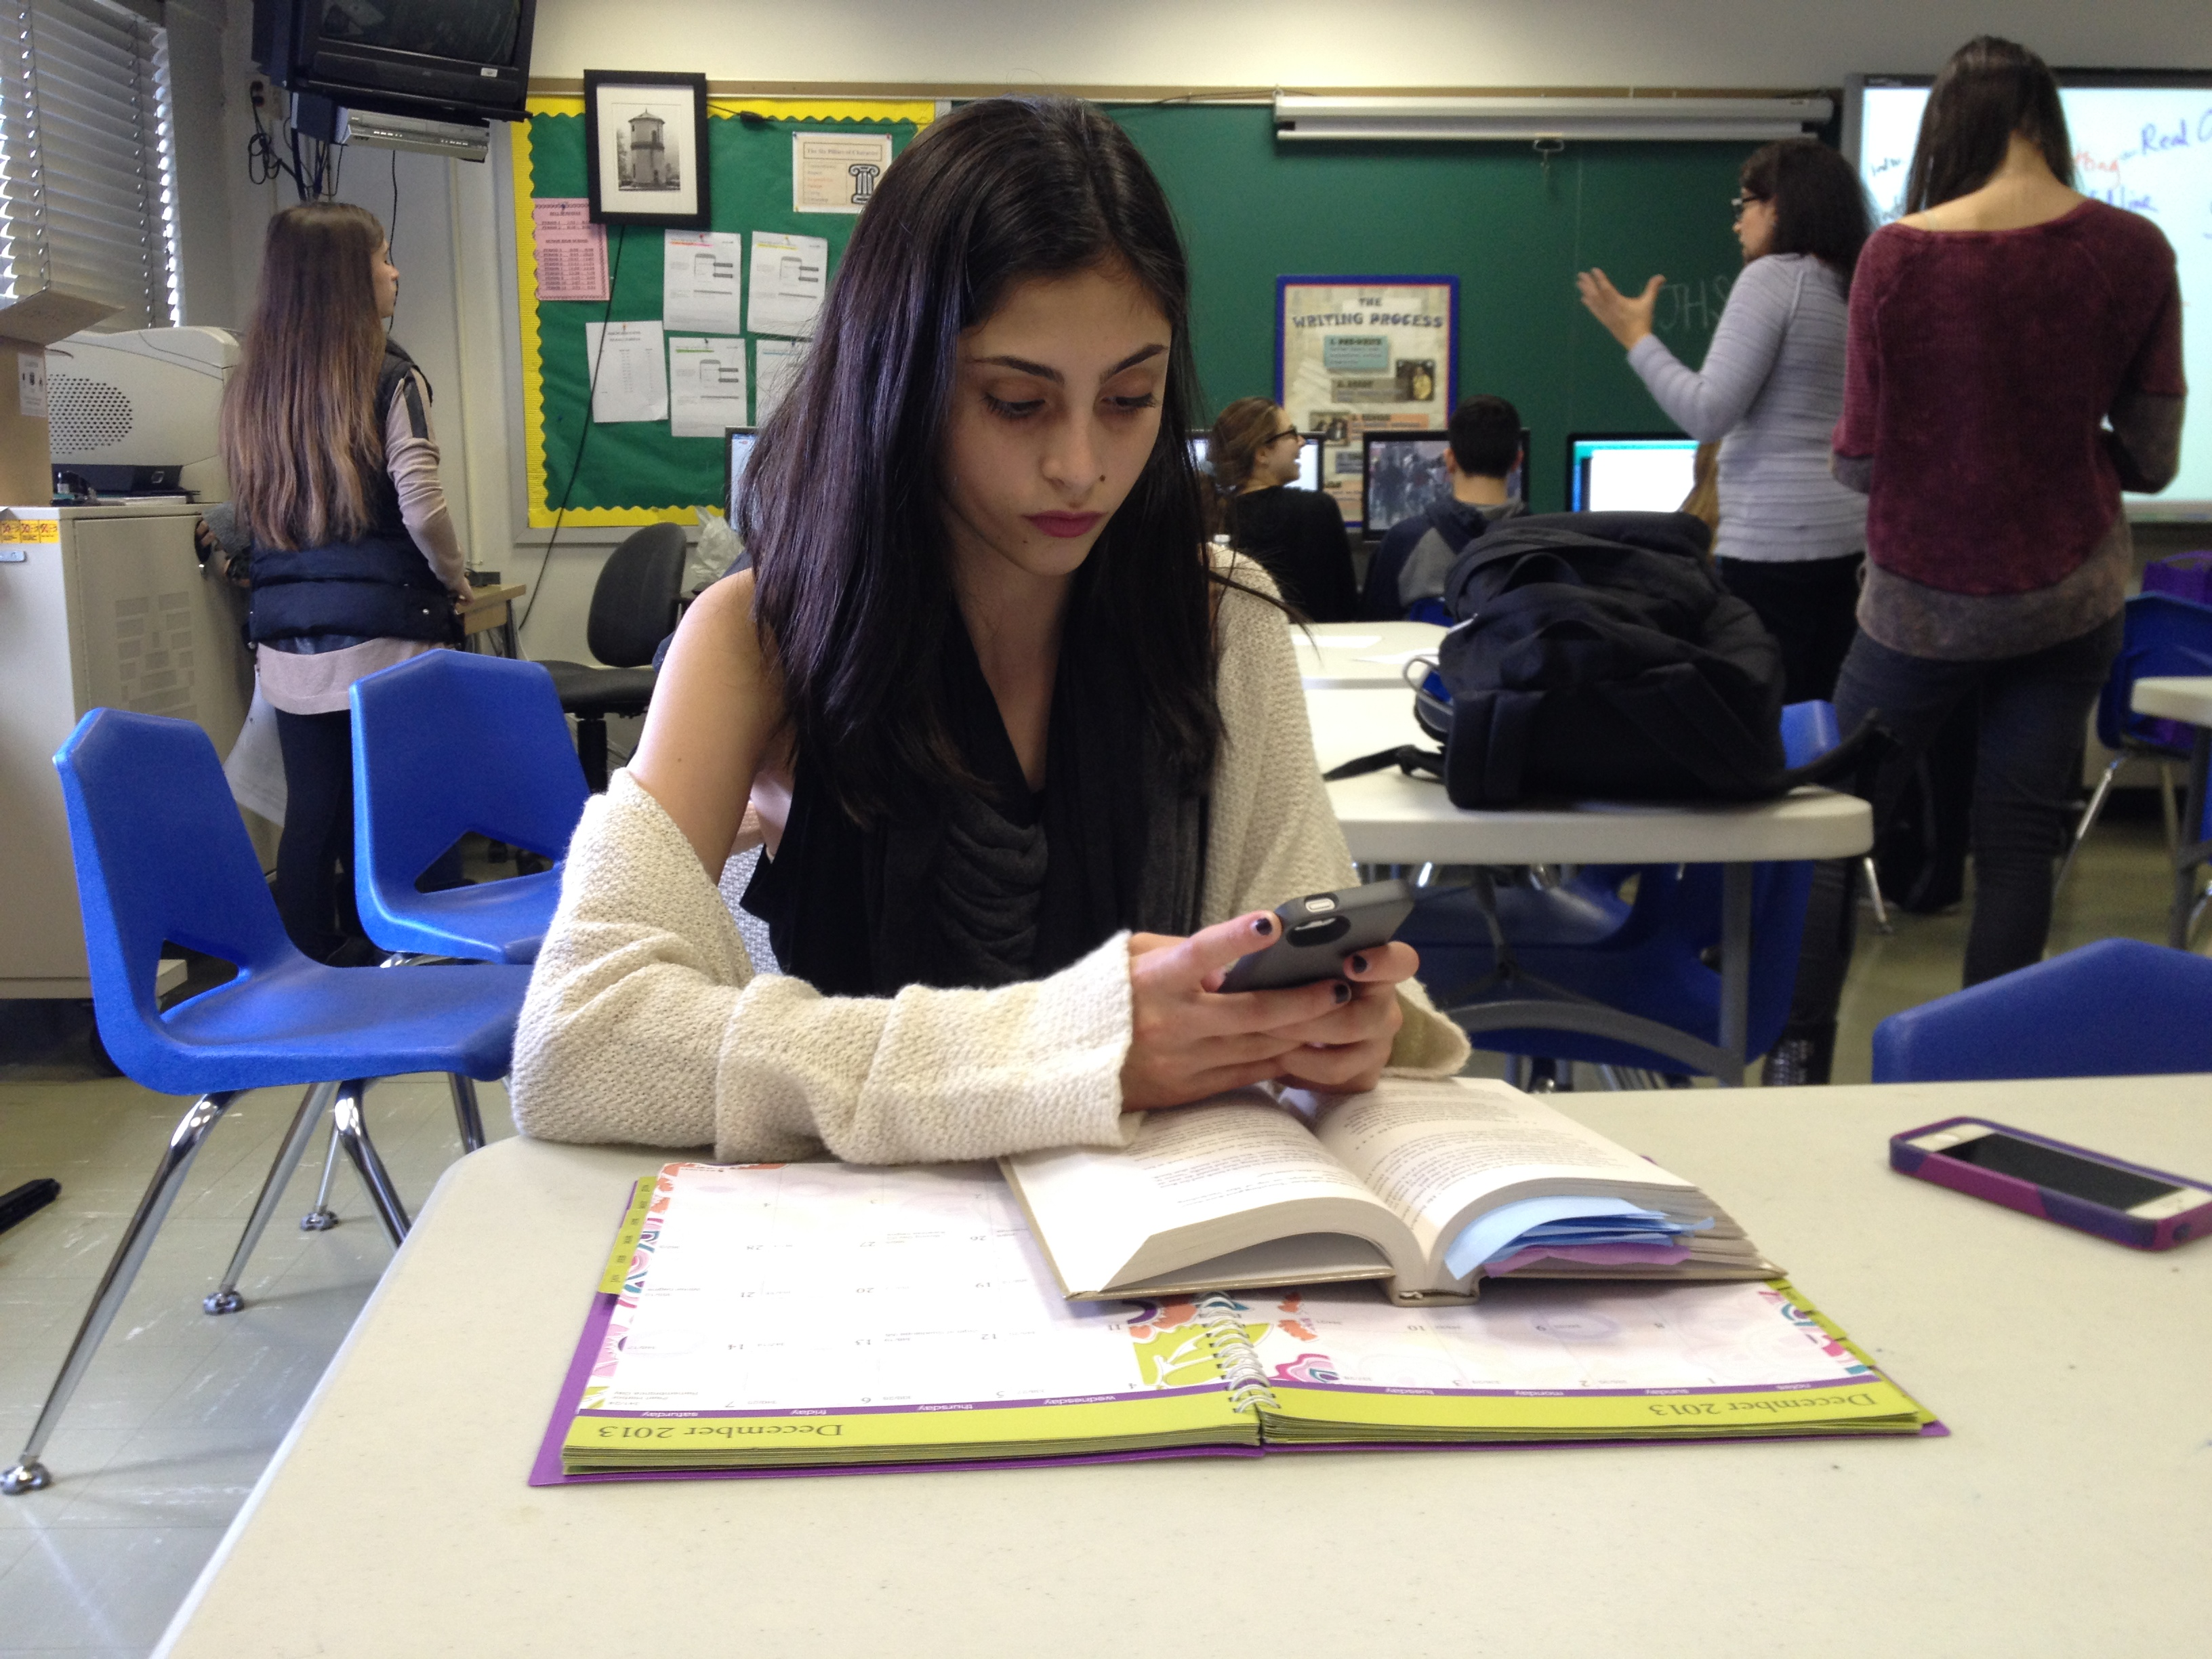 cell phone use in school Sadly, the use of cell phones during instructional time is a pervasive problem that is only growing in intensity—and not just in high school in the past year, i've been inundated with emails from teachers of students as young as sixth grade who are at their wit's end.